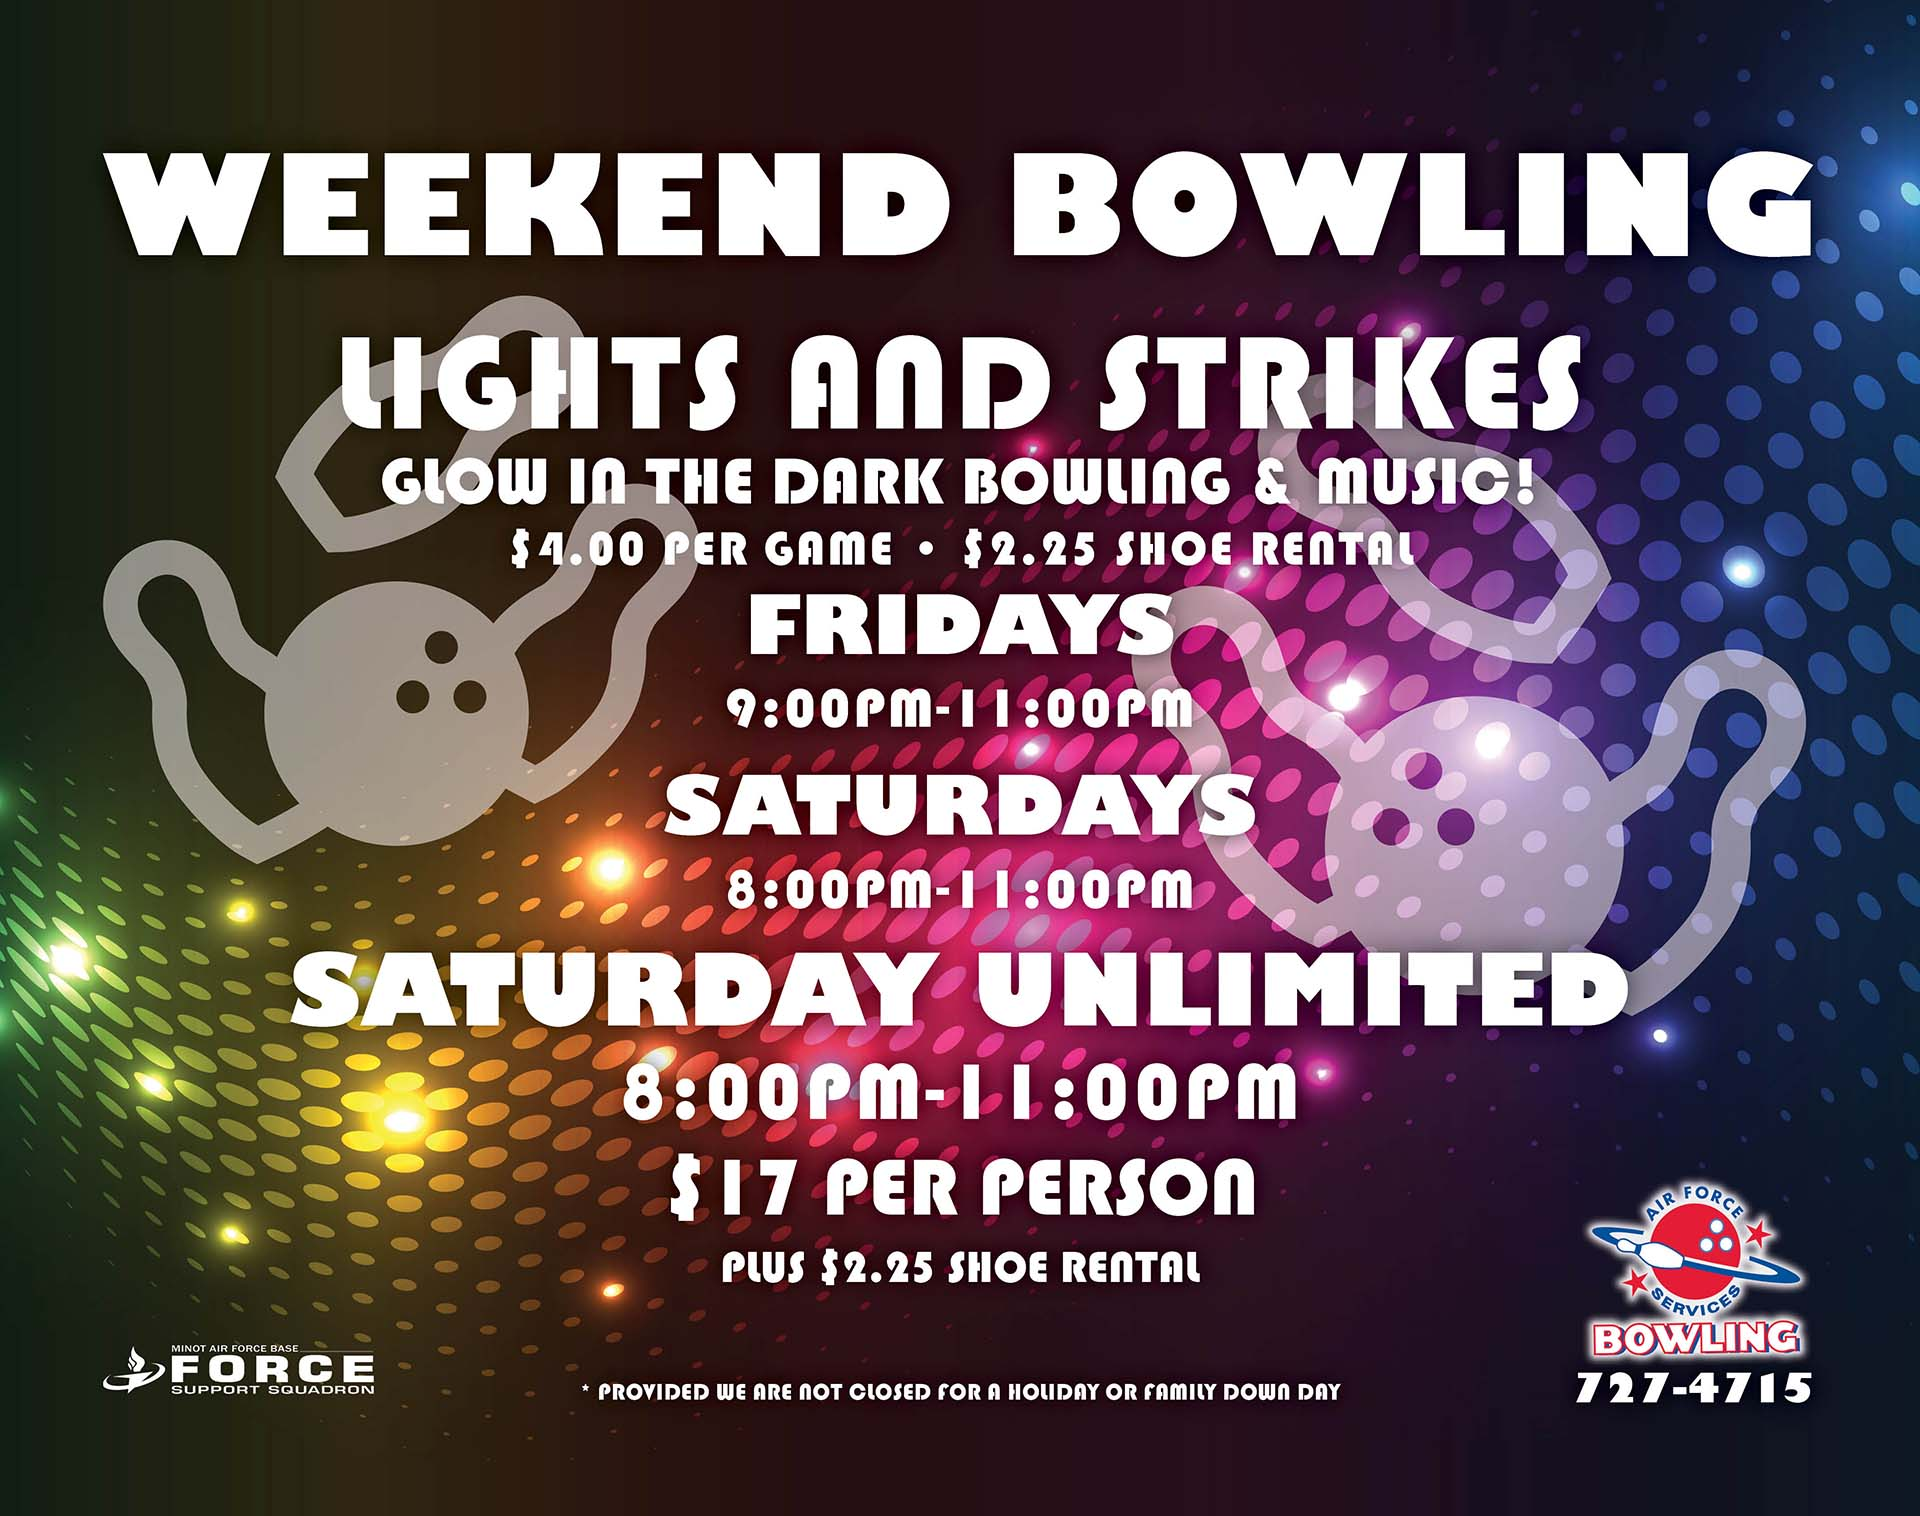 Lights & Strikes and Saturday Unlimited Bowling